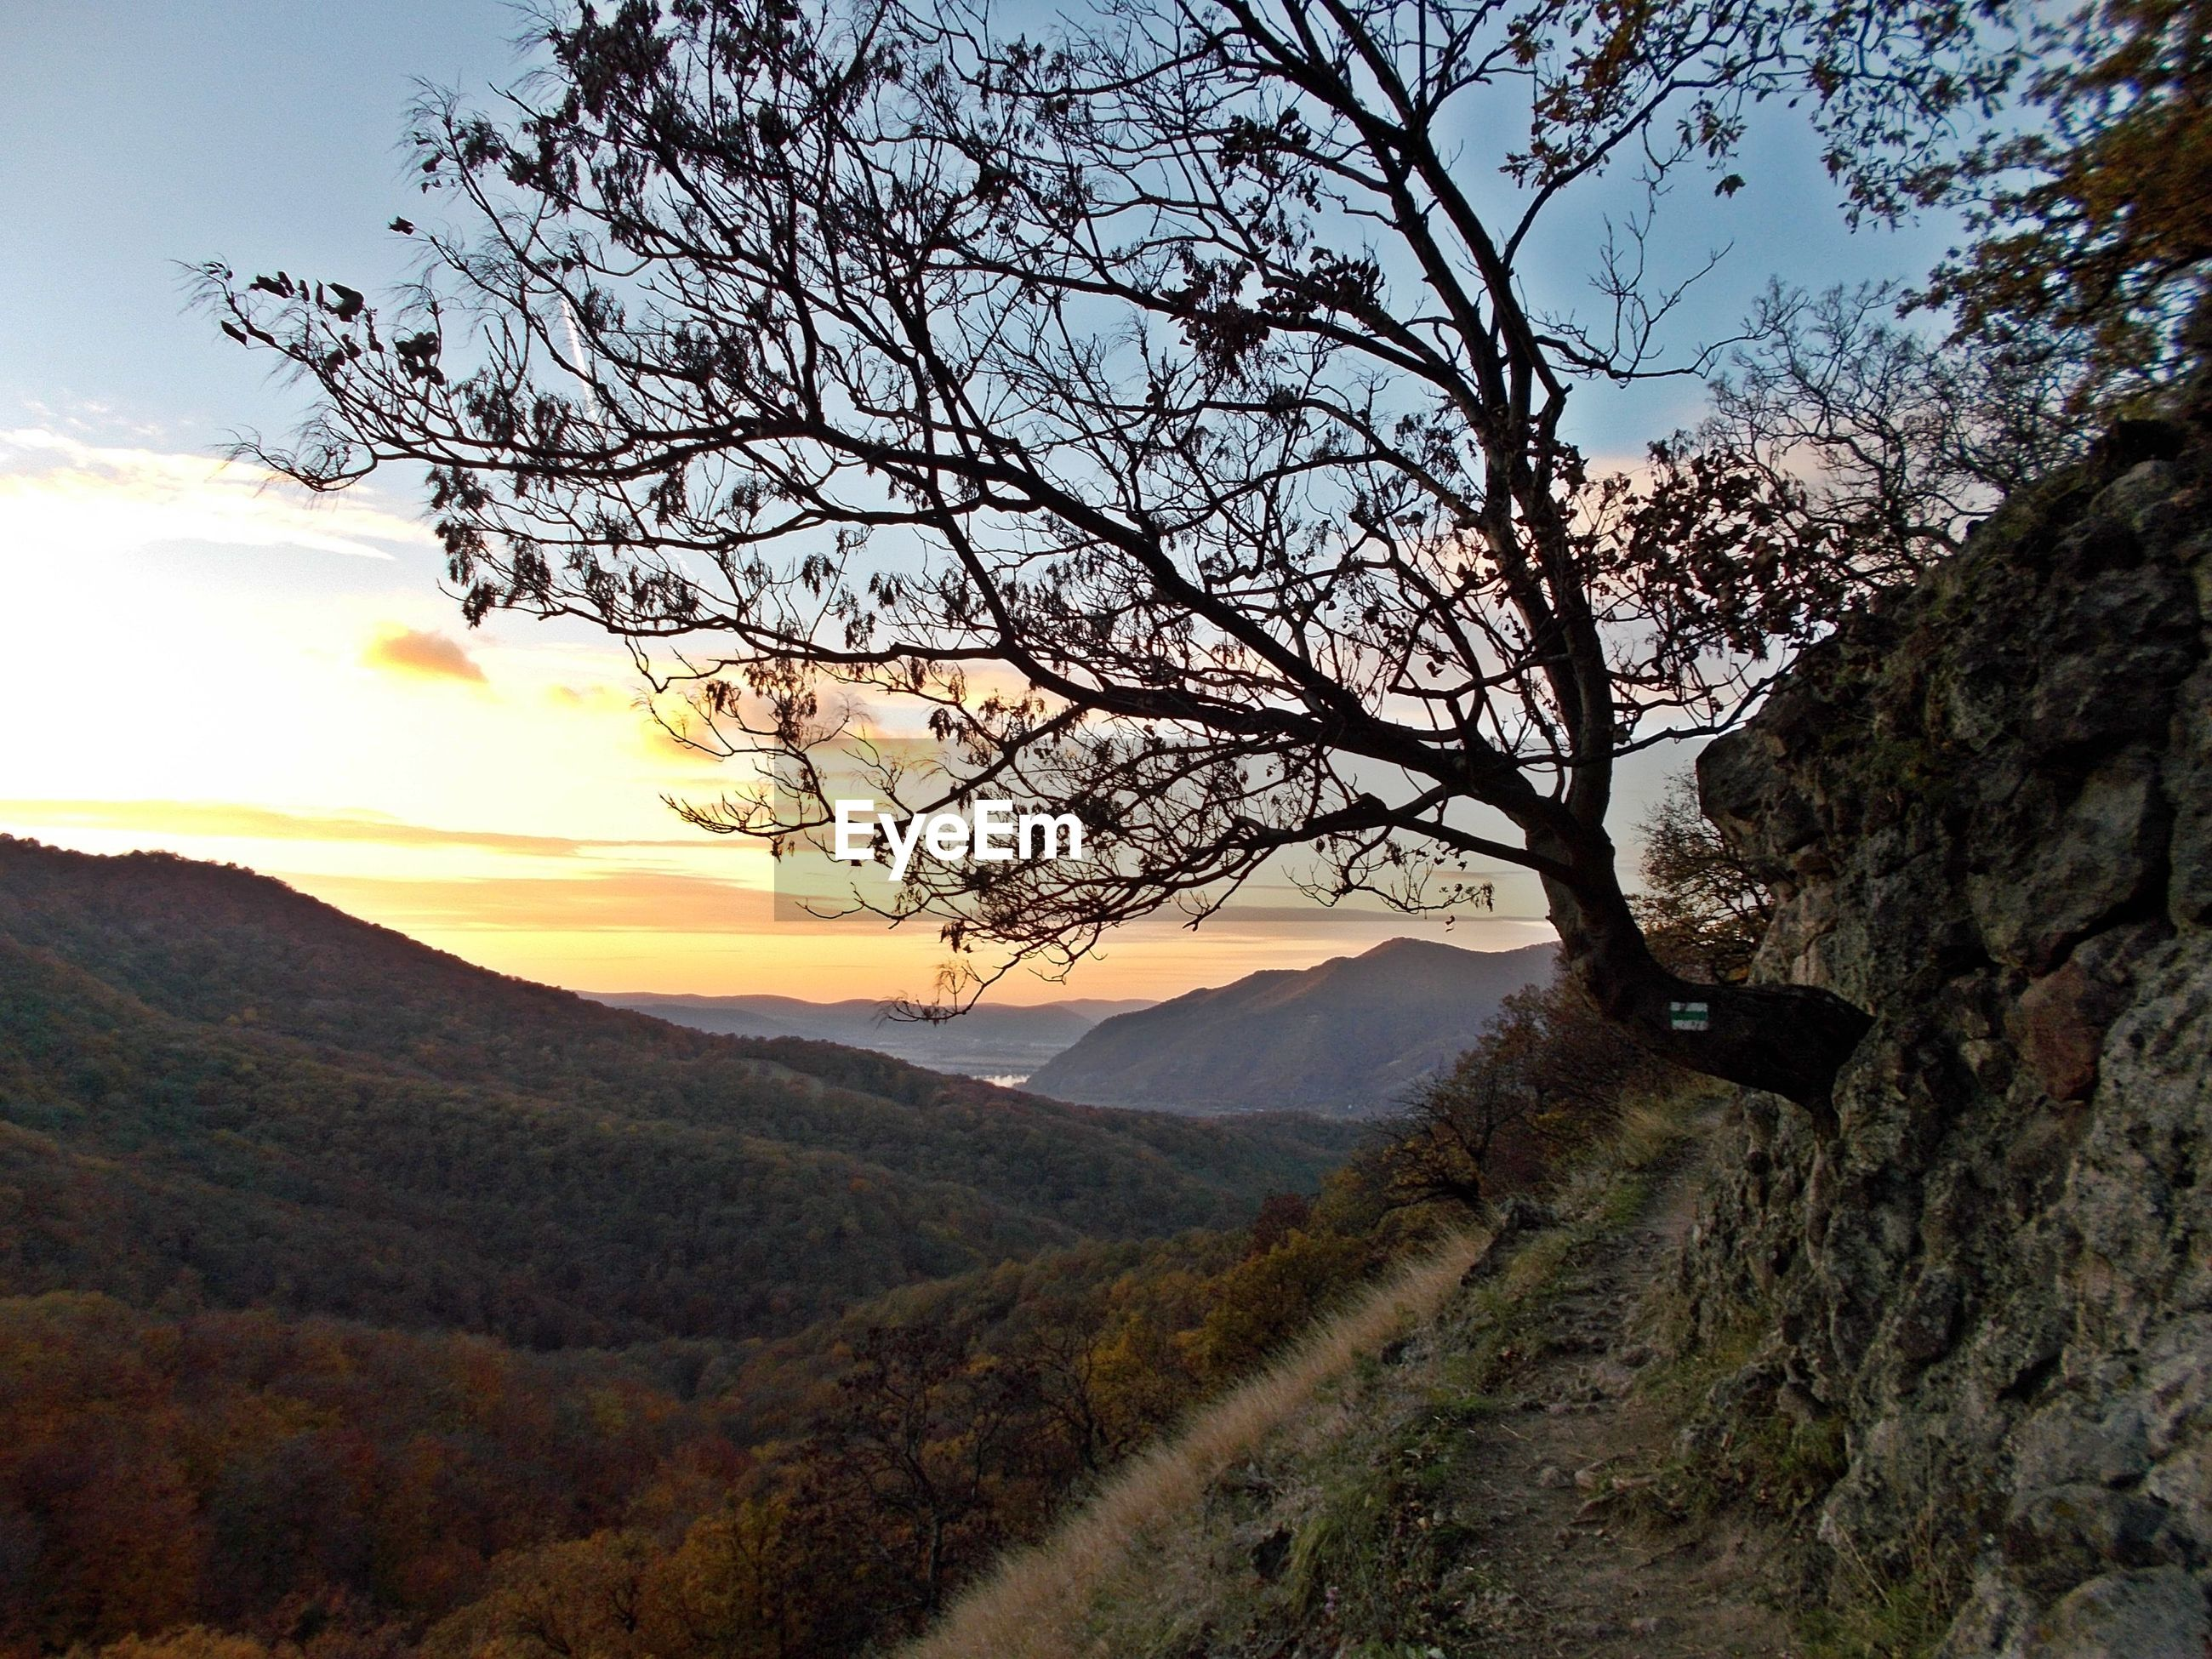 tree, sunset, nature, beauty in nature, sky, landscape, tranquility, scenics, outdoors, growth, tranquil scene, mountain, no people, day